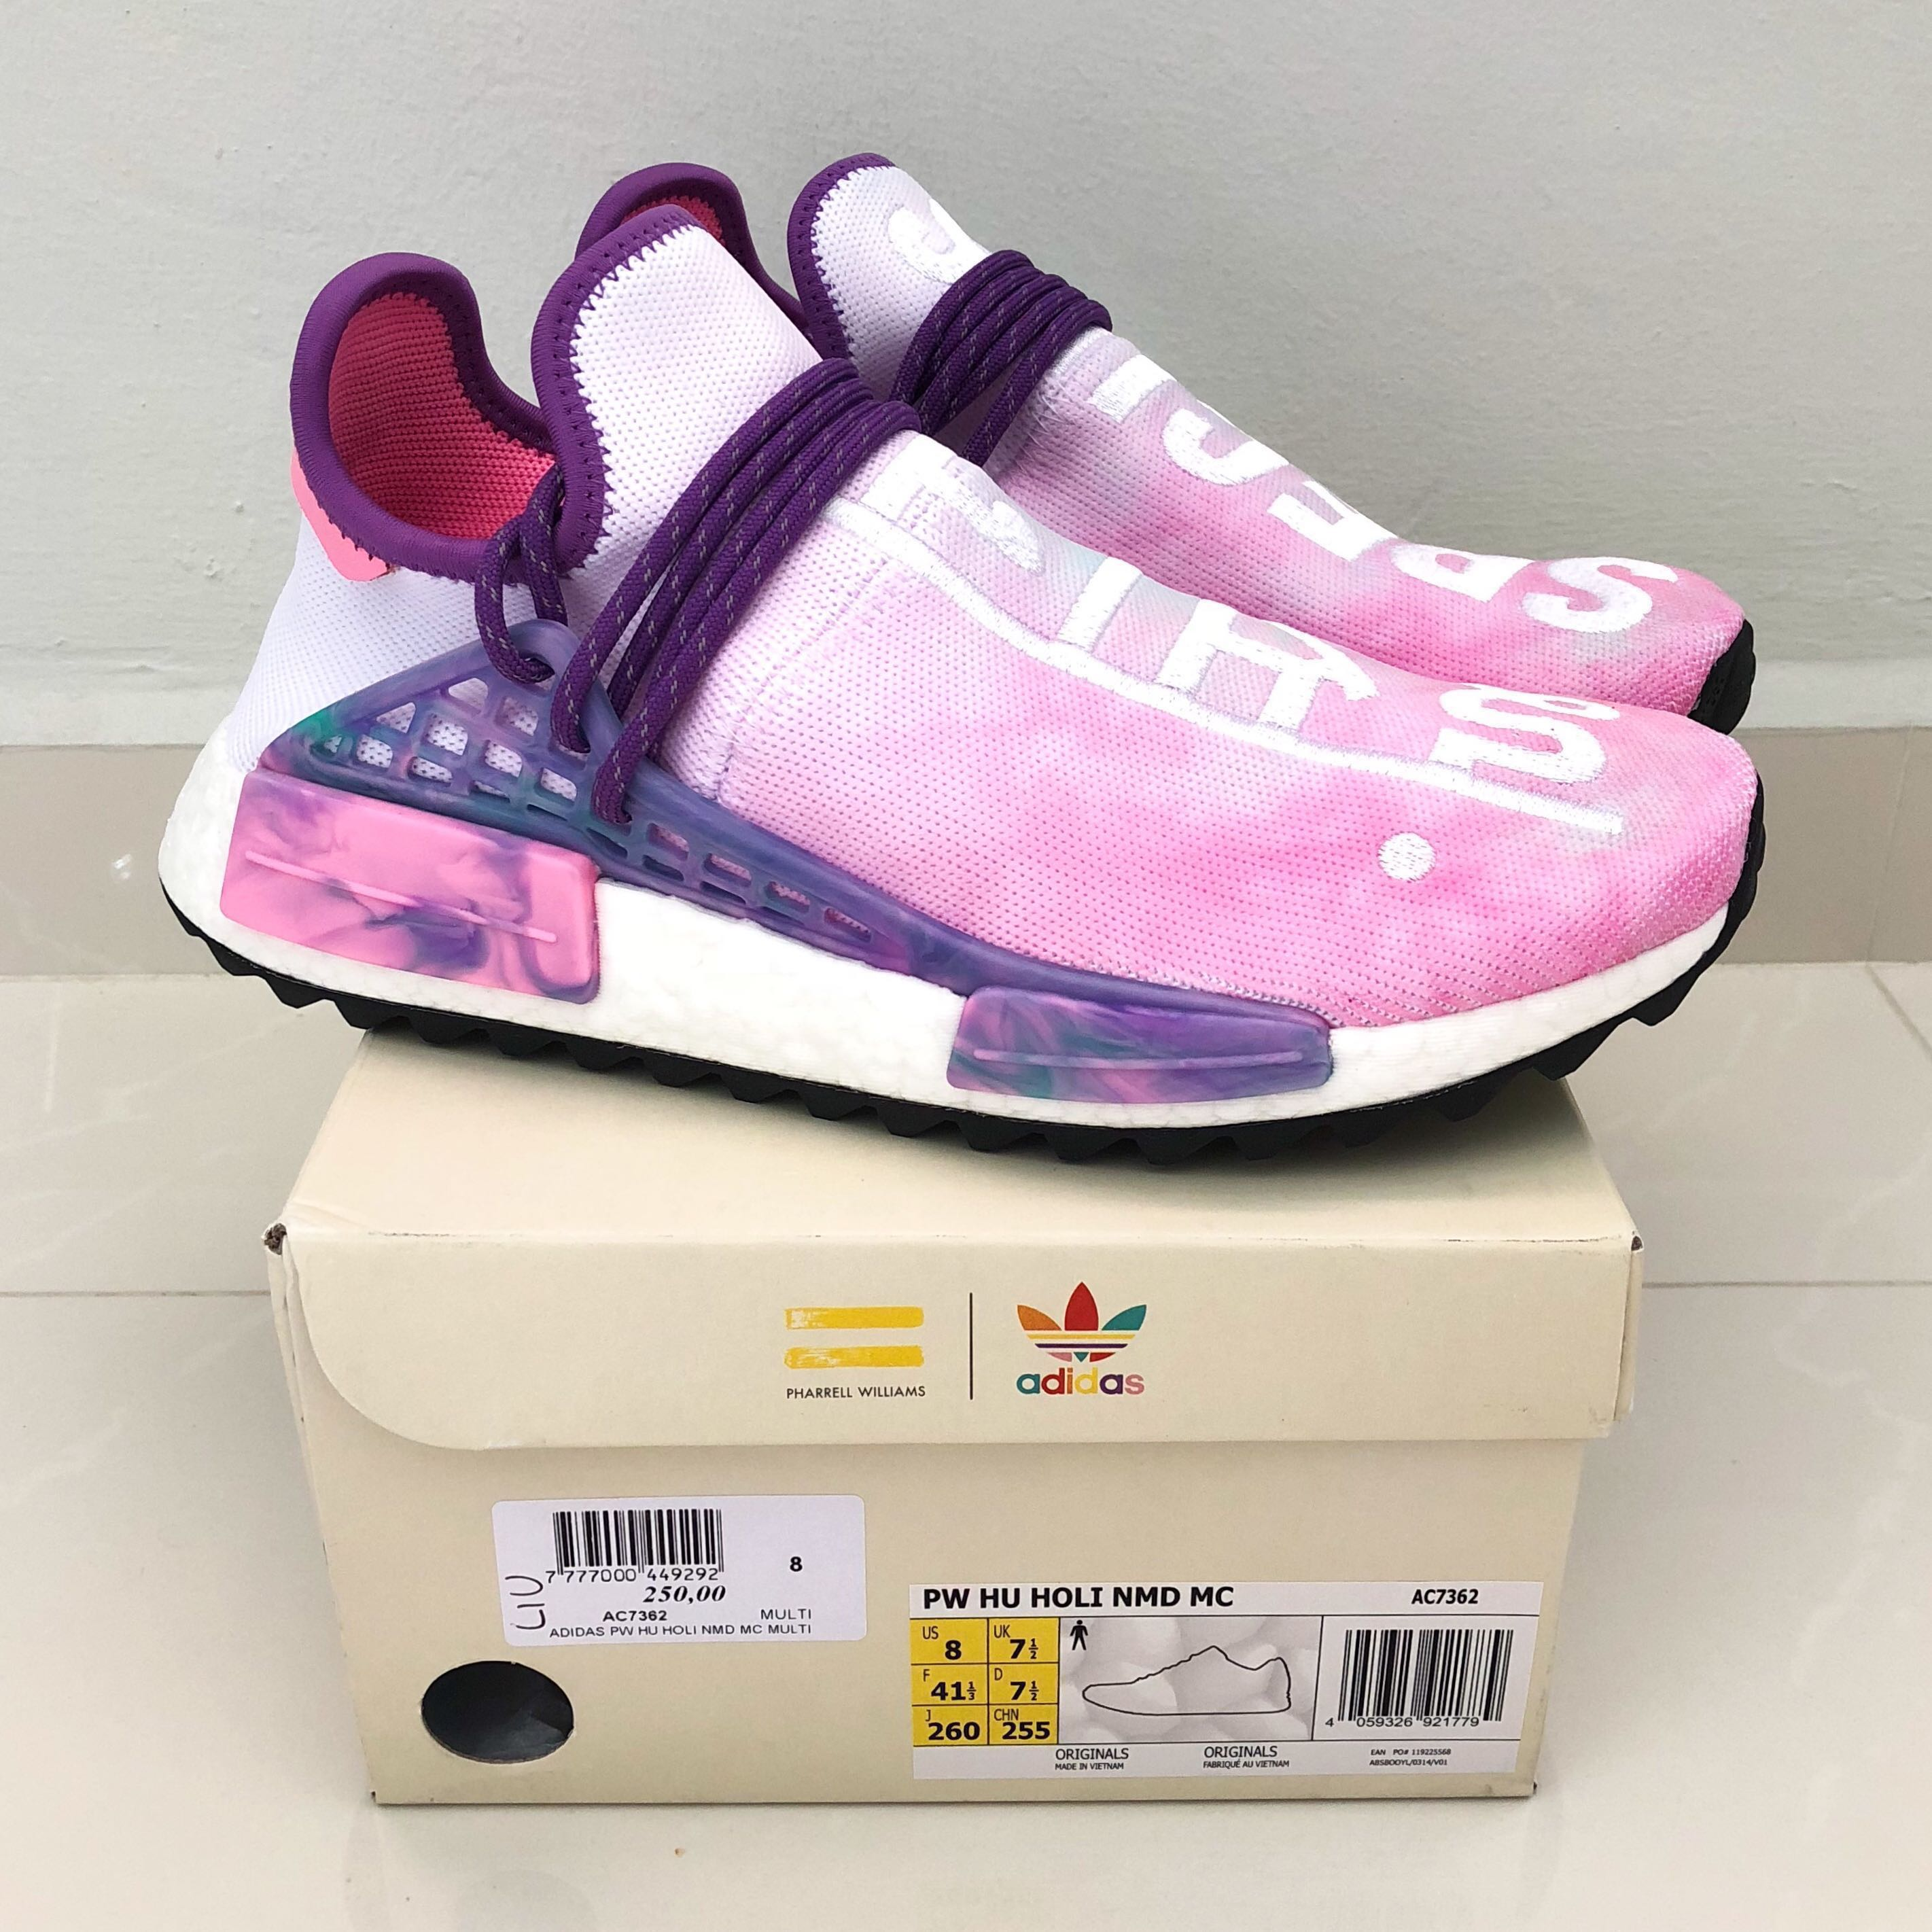 7b1c72504 Pharrell Williams x Adidas NMD Hu Holi MC  Pink Glow